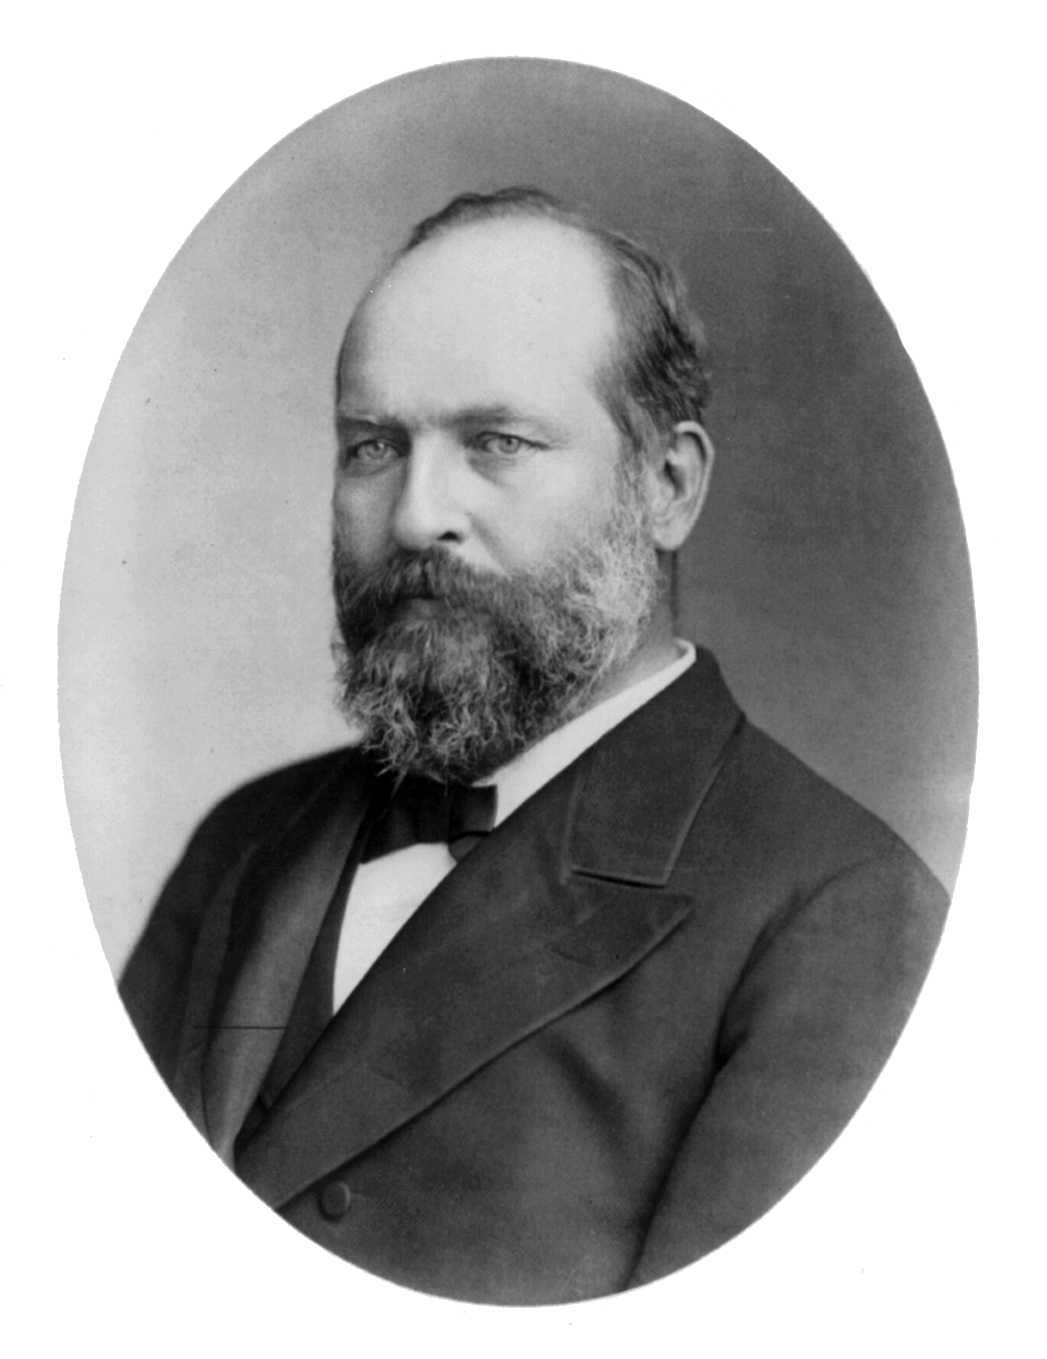 James-Garfield-Headshot